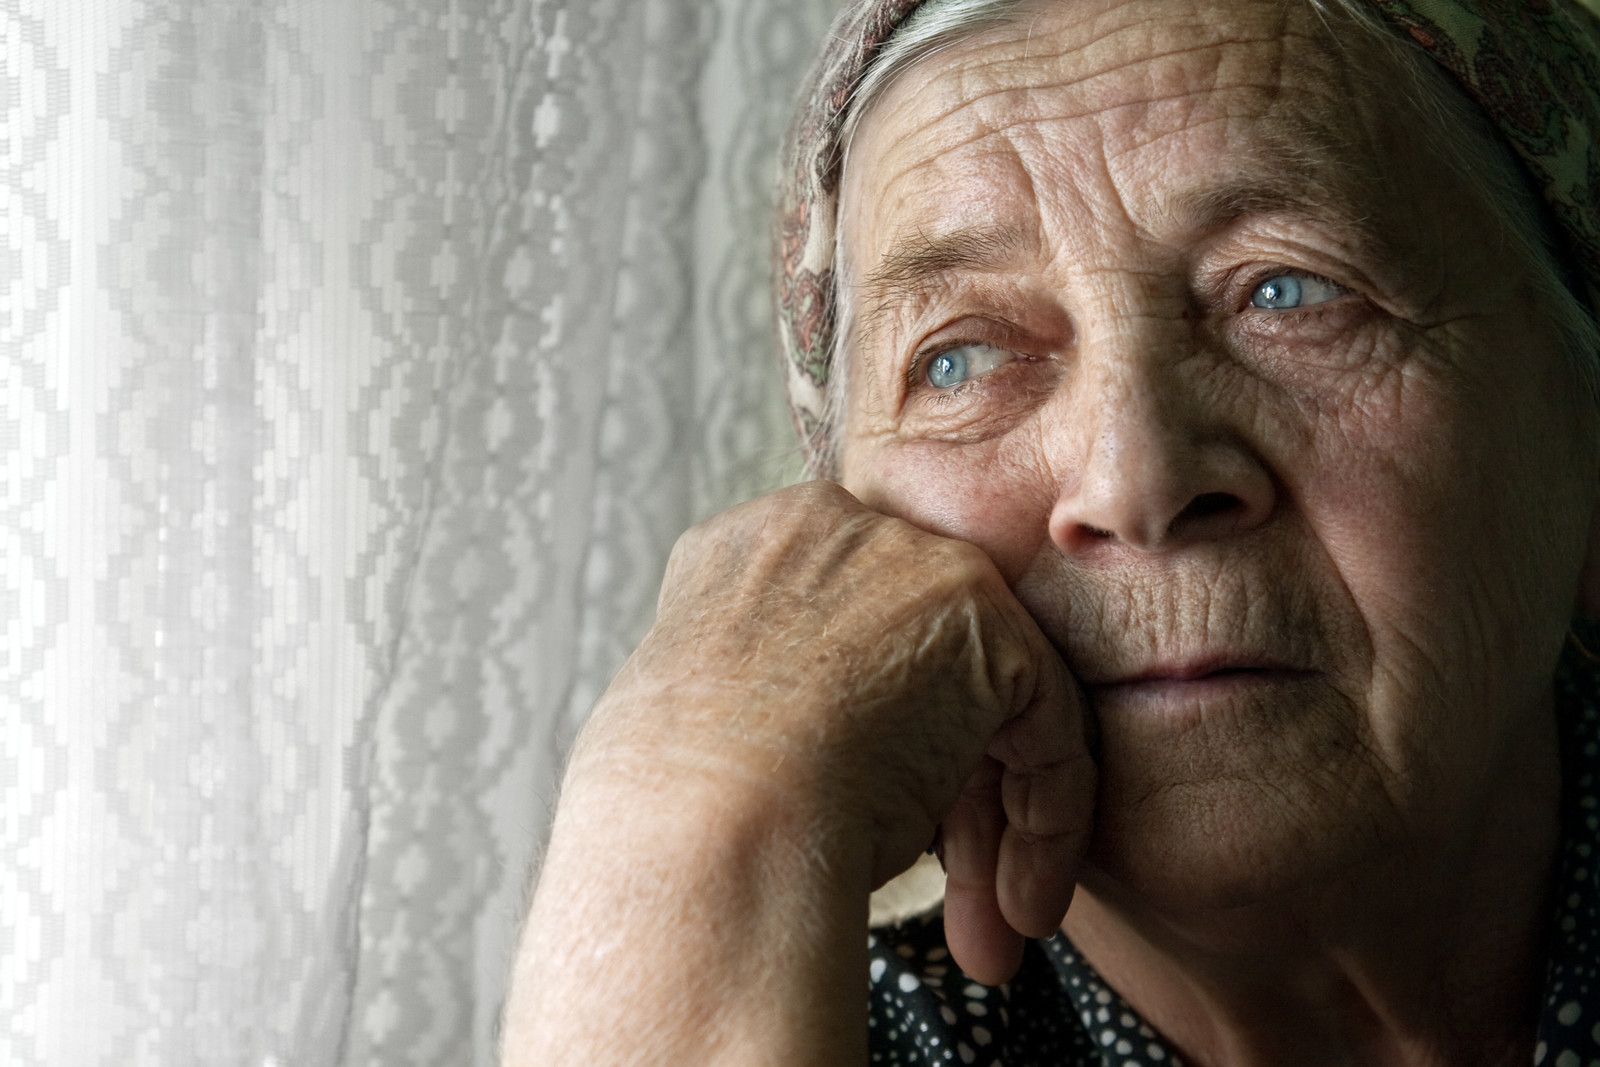 Depressed looking woman looking sad out the window